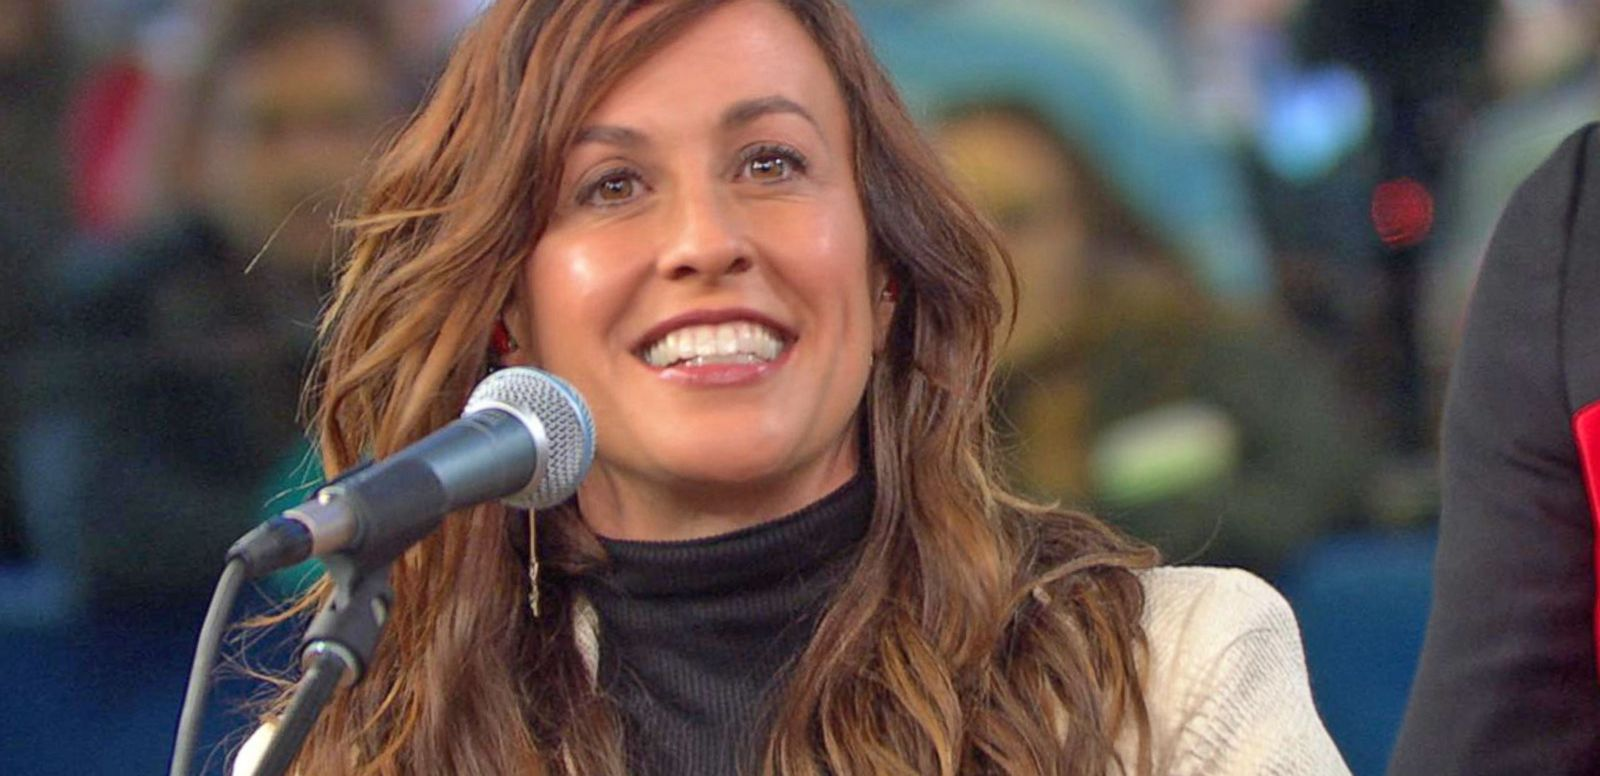 VIDEO: Alanis Morissette on 20th Anniversary Edition of Jagged Little Pill